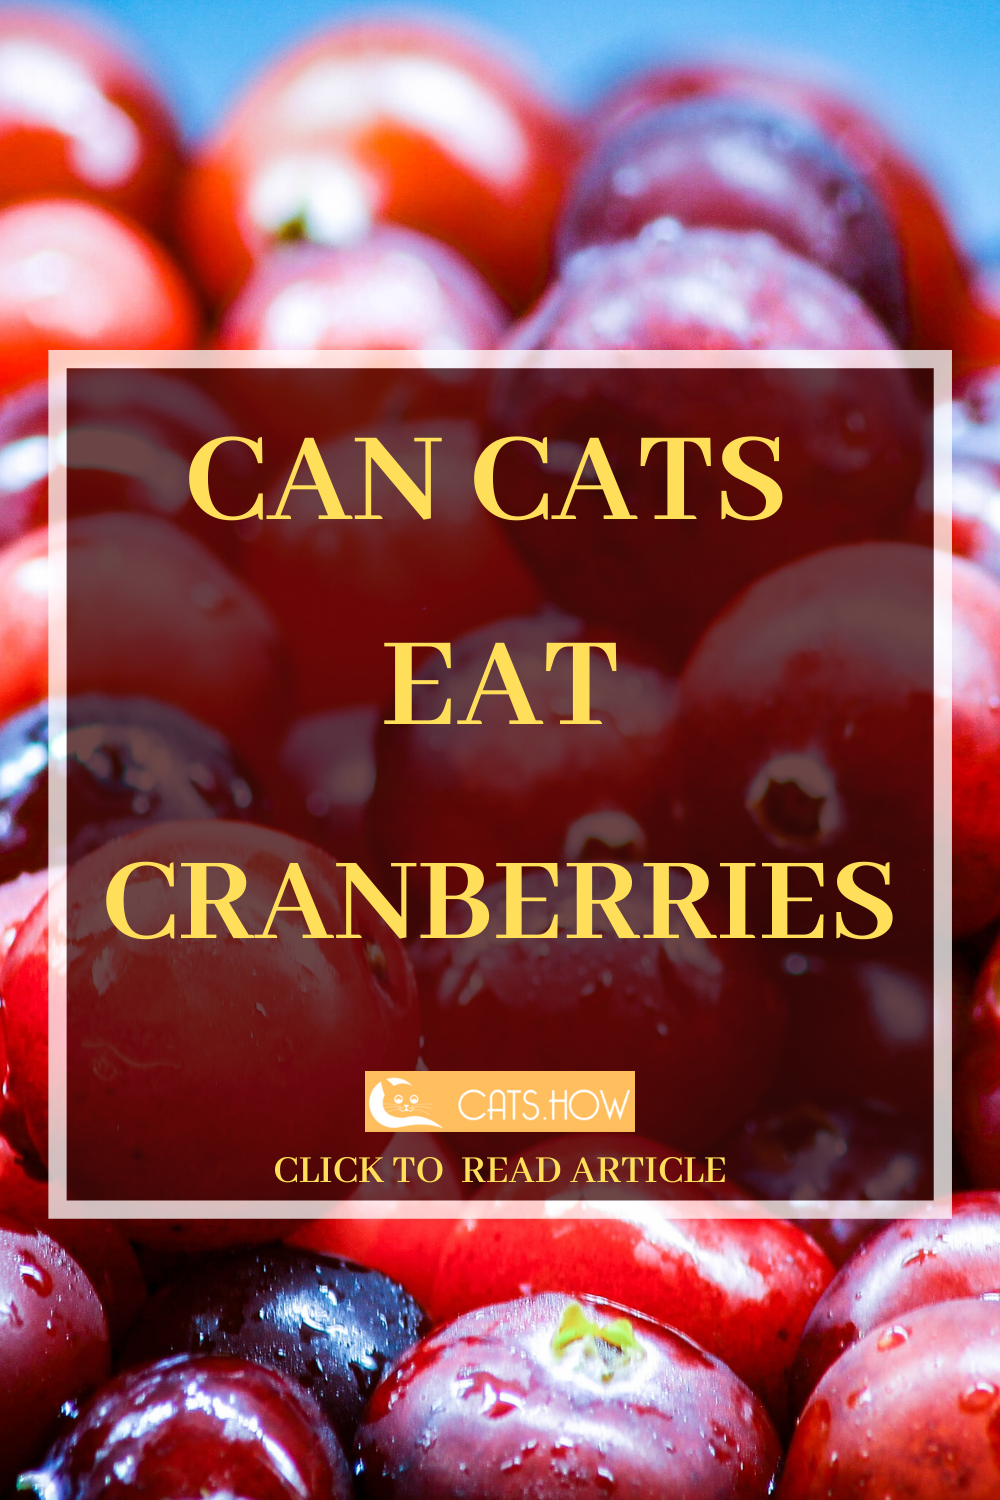 ᐉ Can Cats Eat Cranberries What is healthy food, Eat